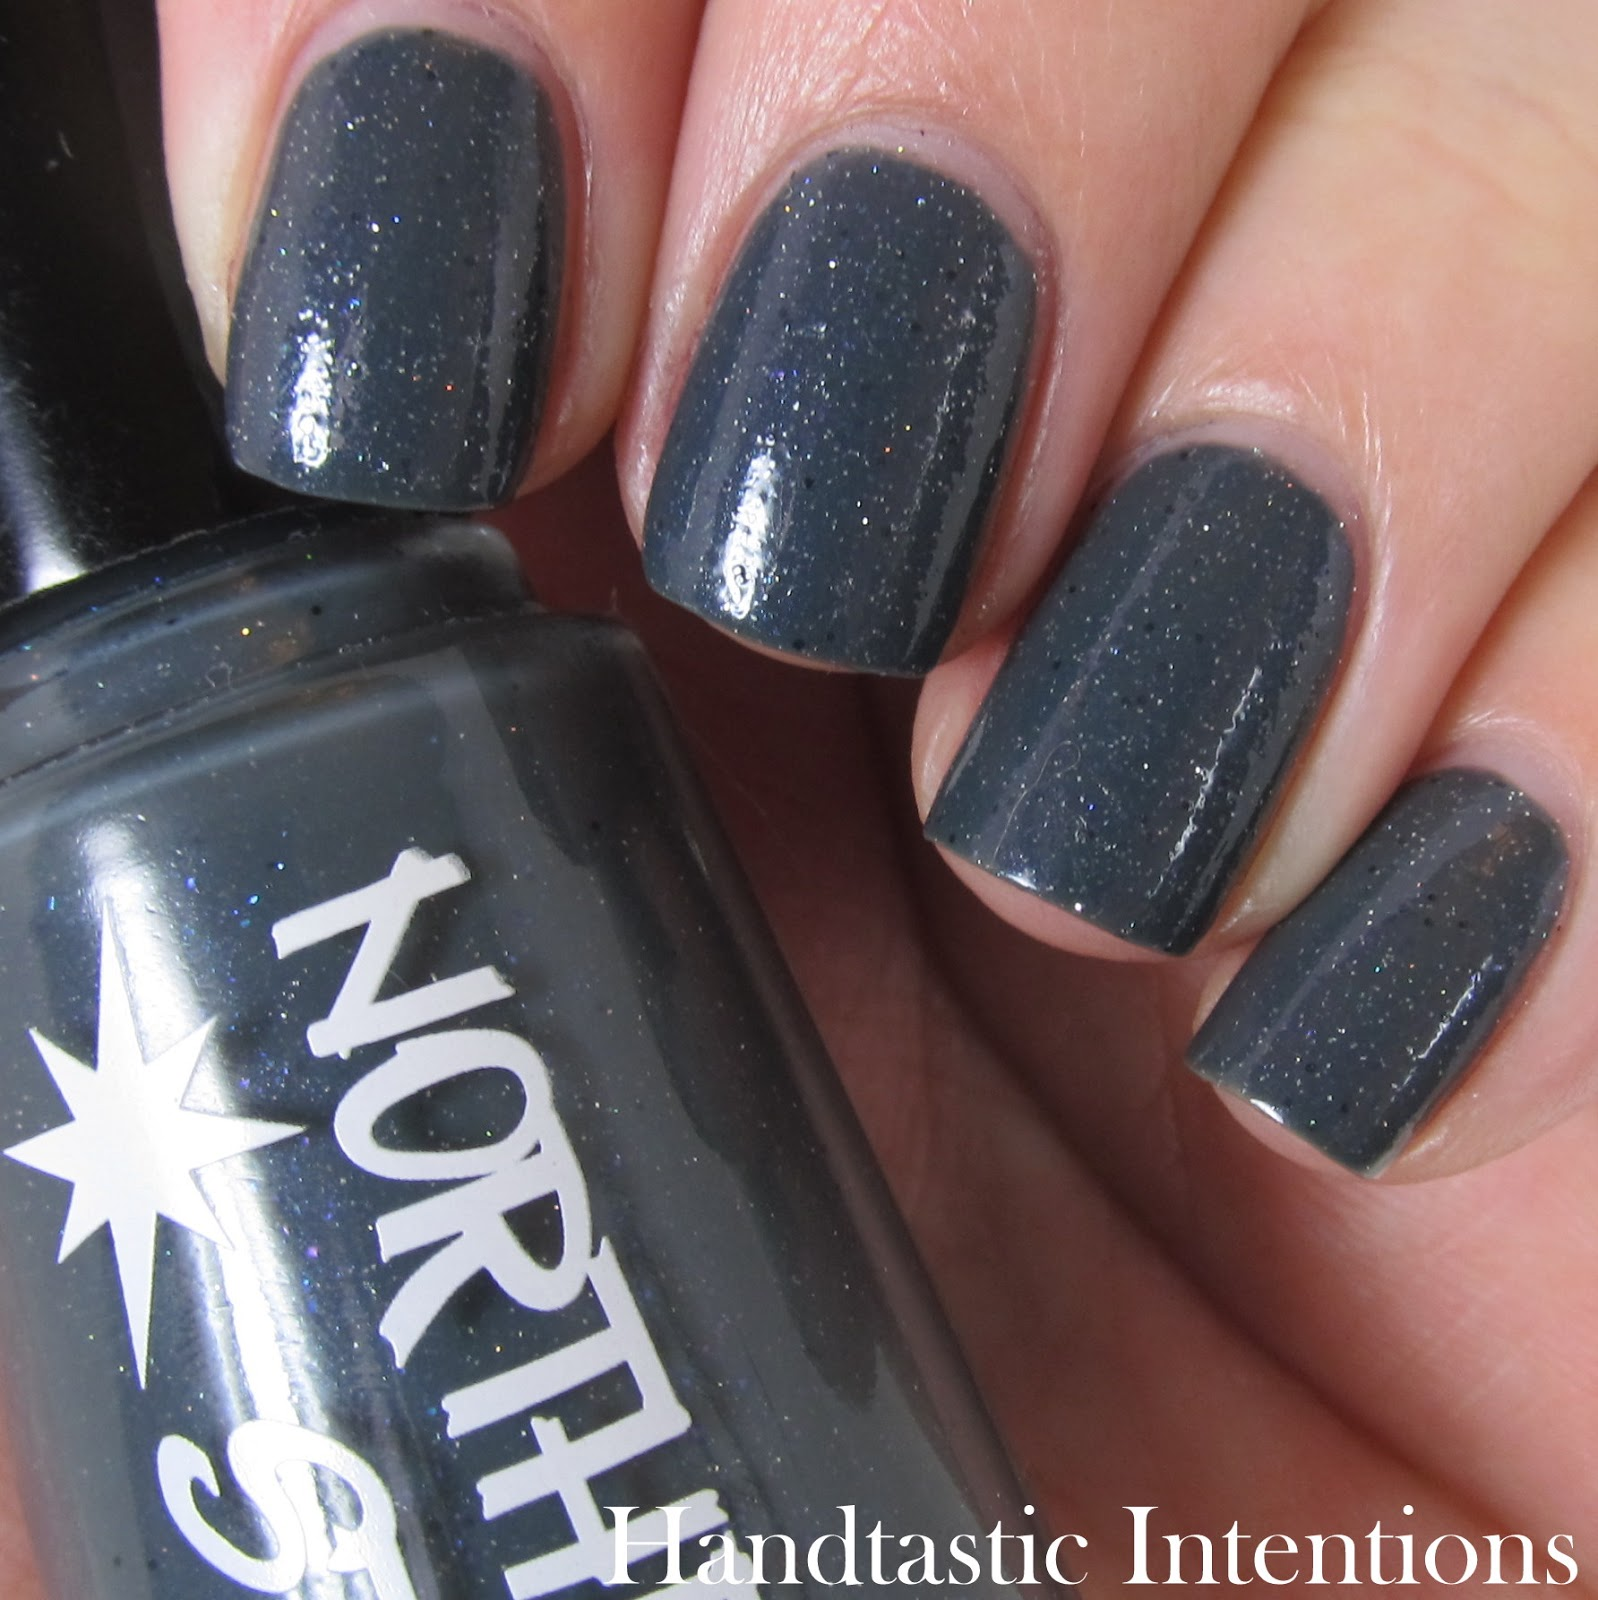 Northern-Star-Polish-One-With-The-Shadows-Swatch